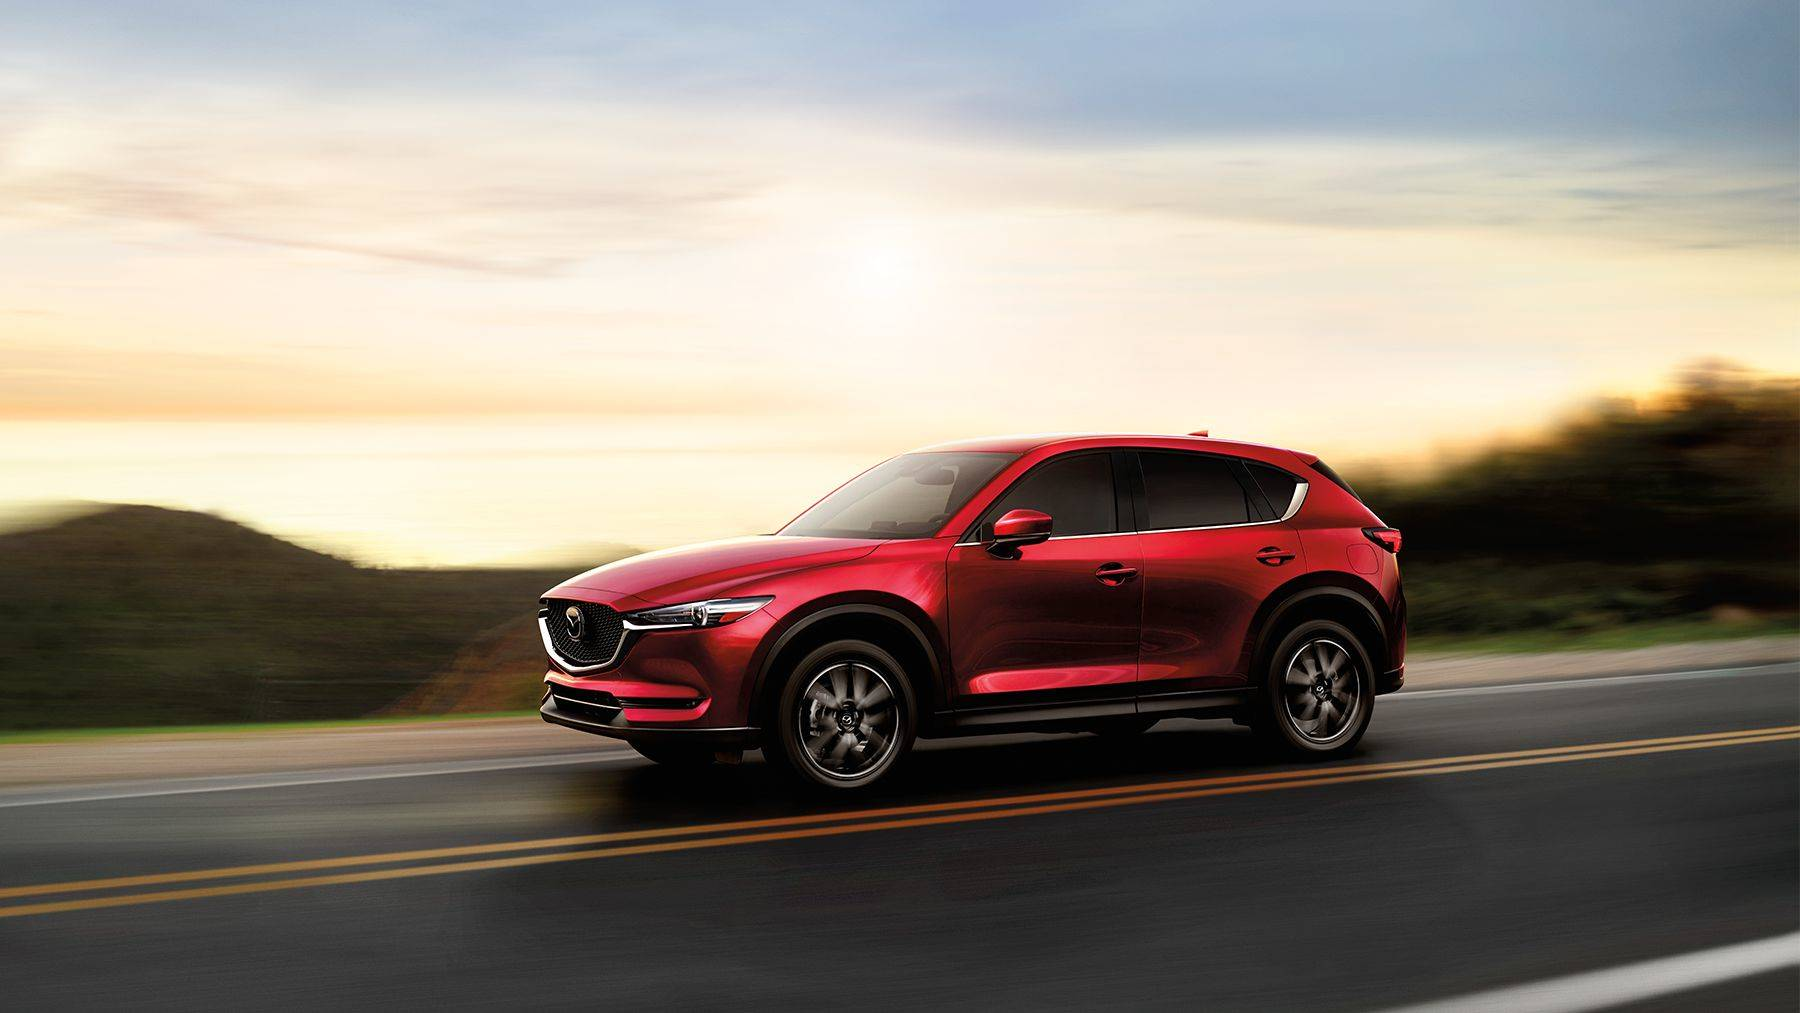 2018 Mazda CX-5 Financing in Gaithersburg, MD